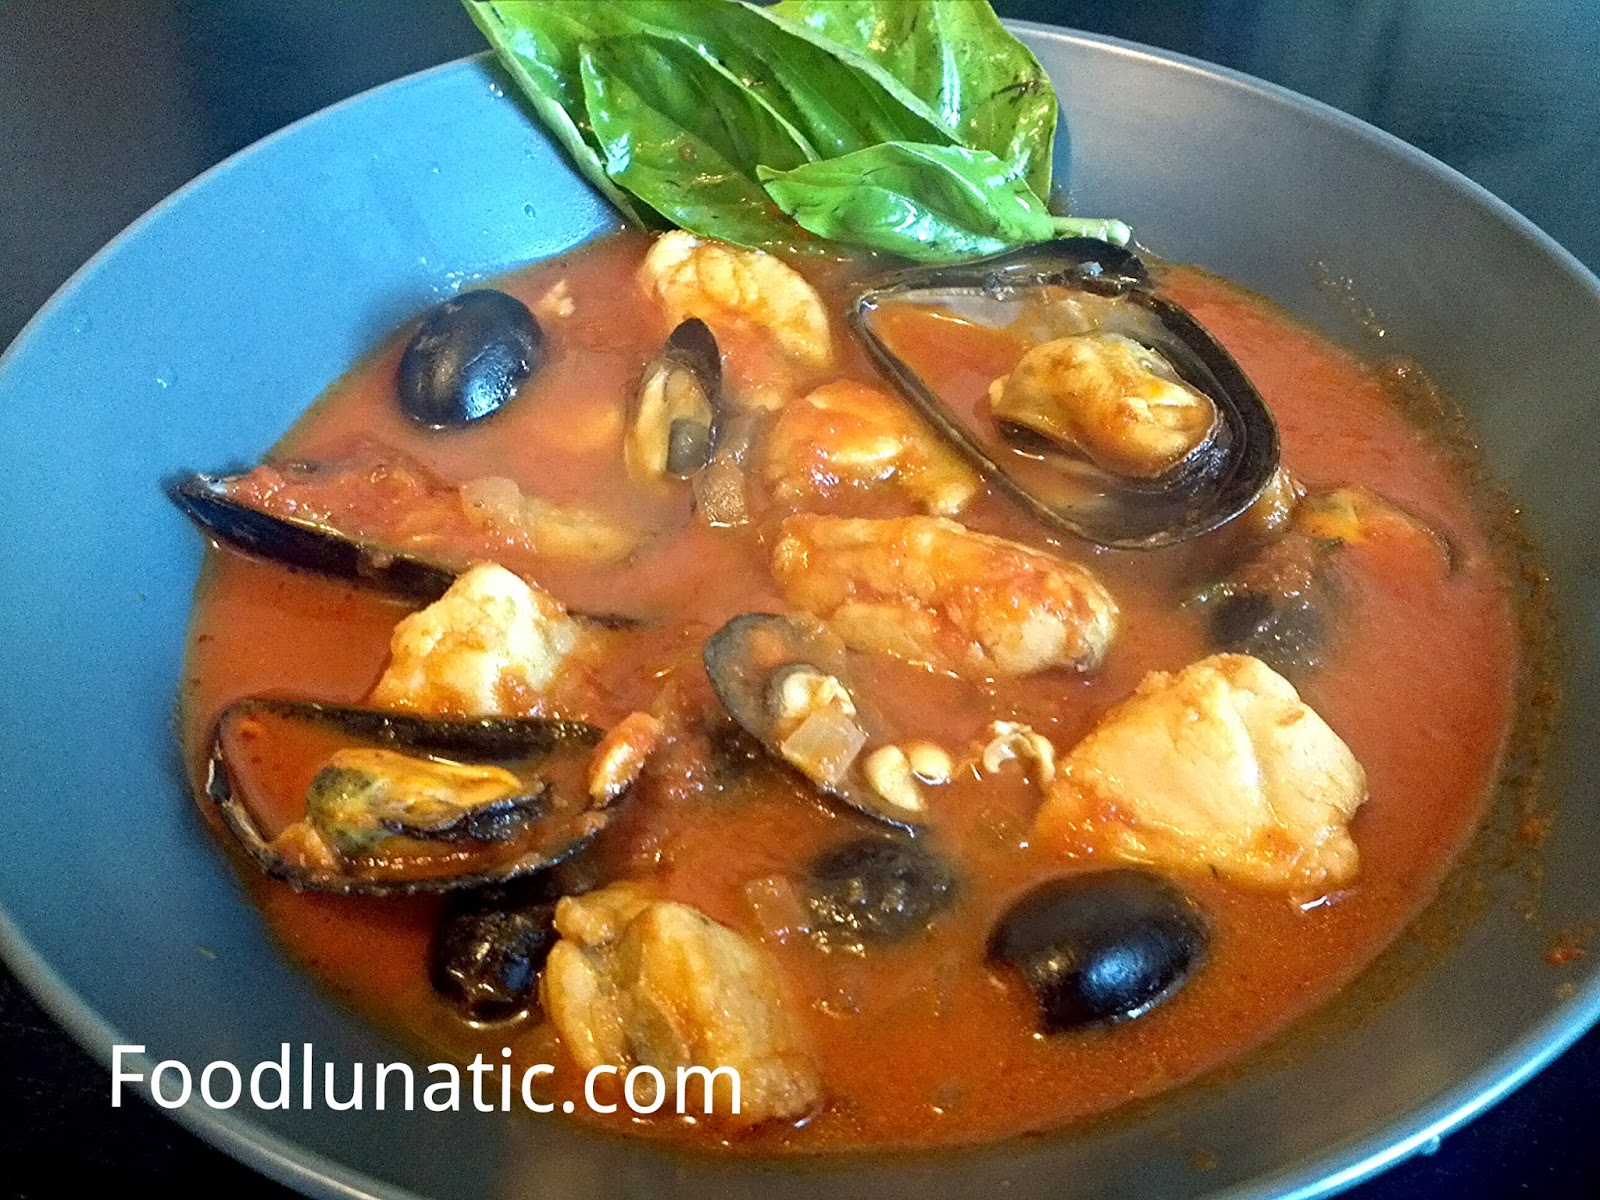 Food Lunatic: Monkfish and Mussel in Olive and Tomato Sauce